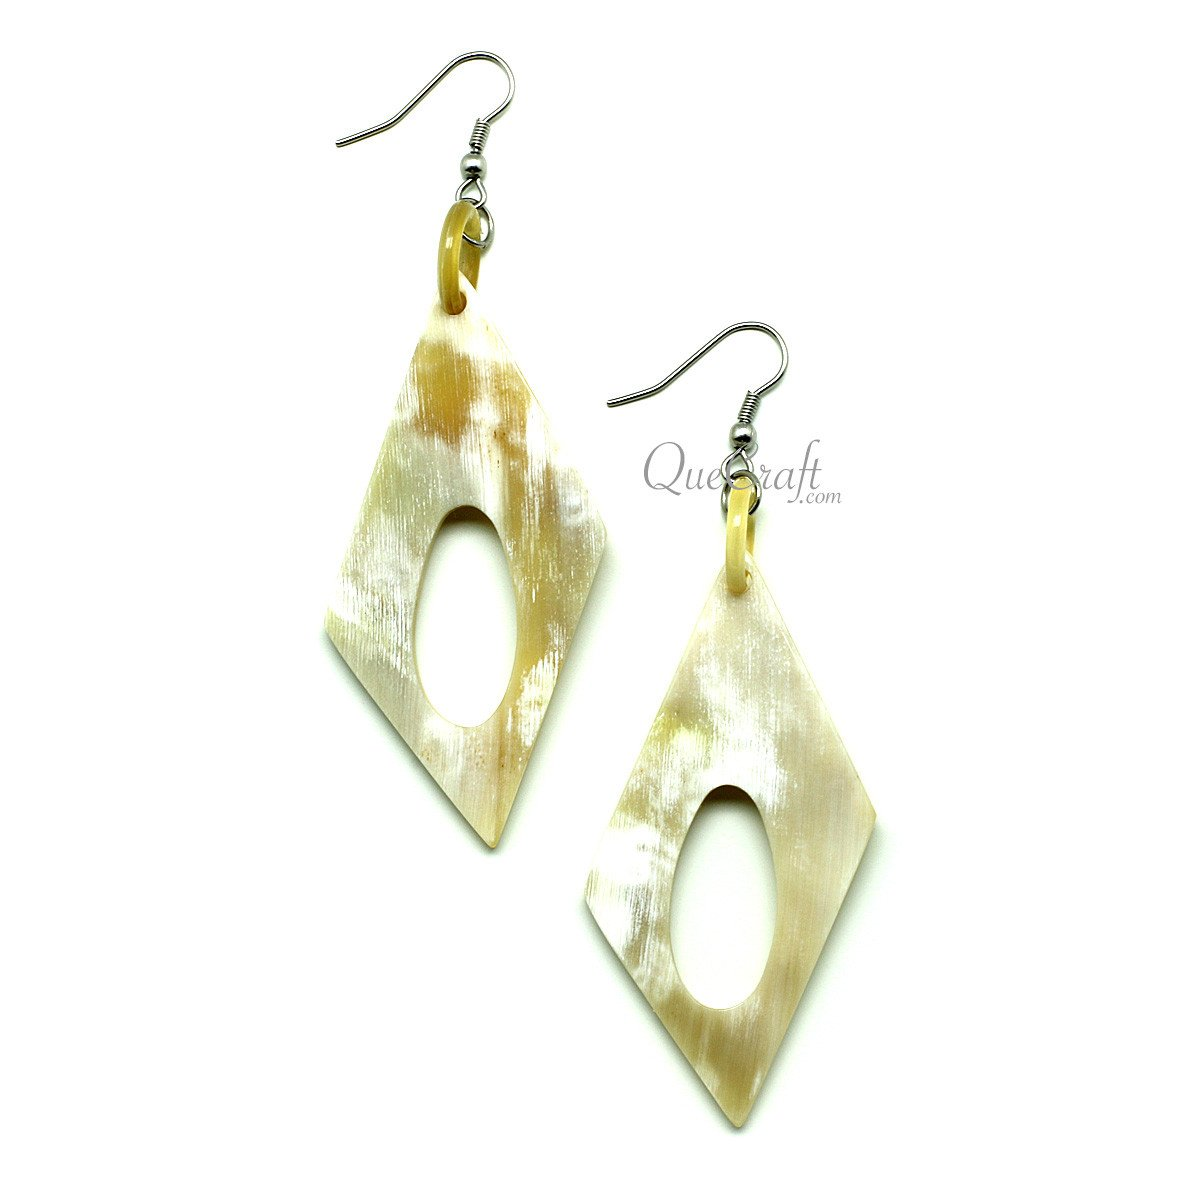 Horn Earrings #12062 - HORN.JEWELRY